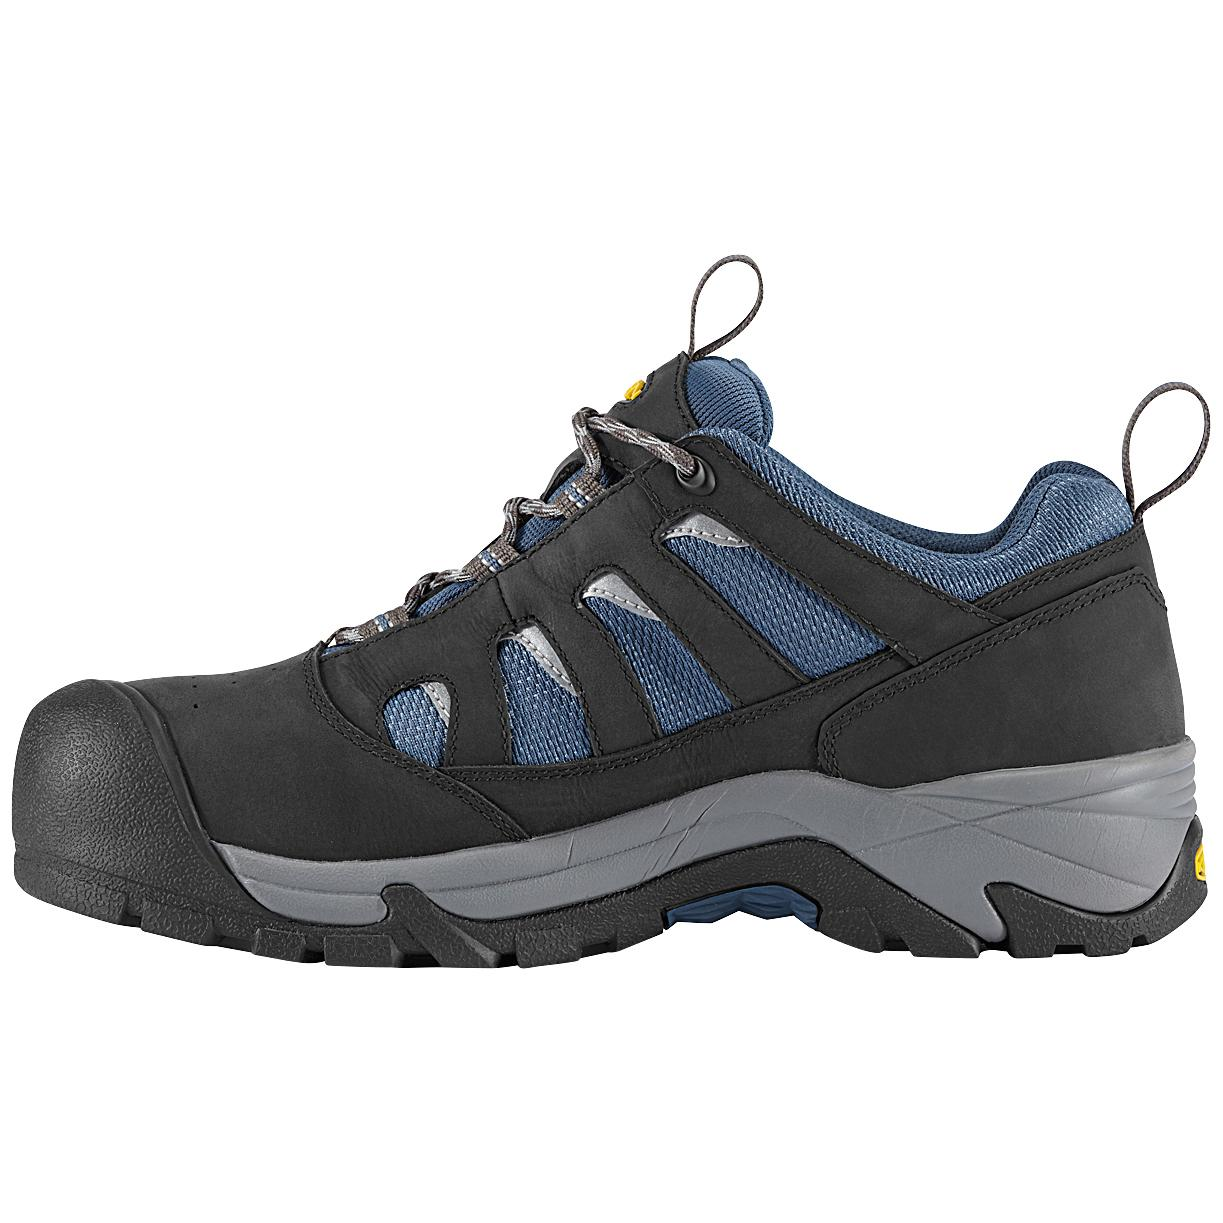 Keen Athletic Shoes